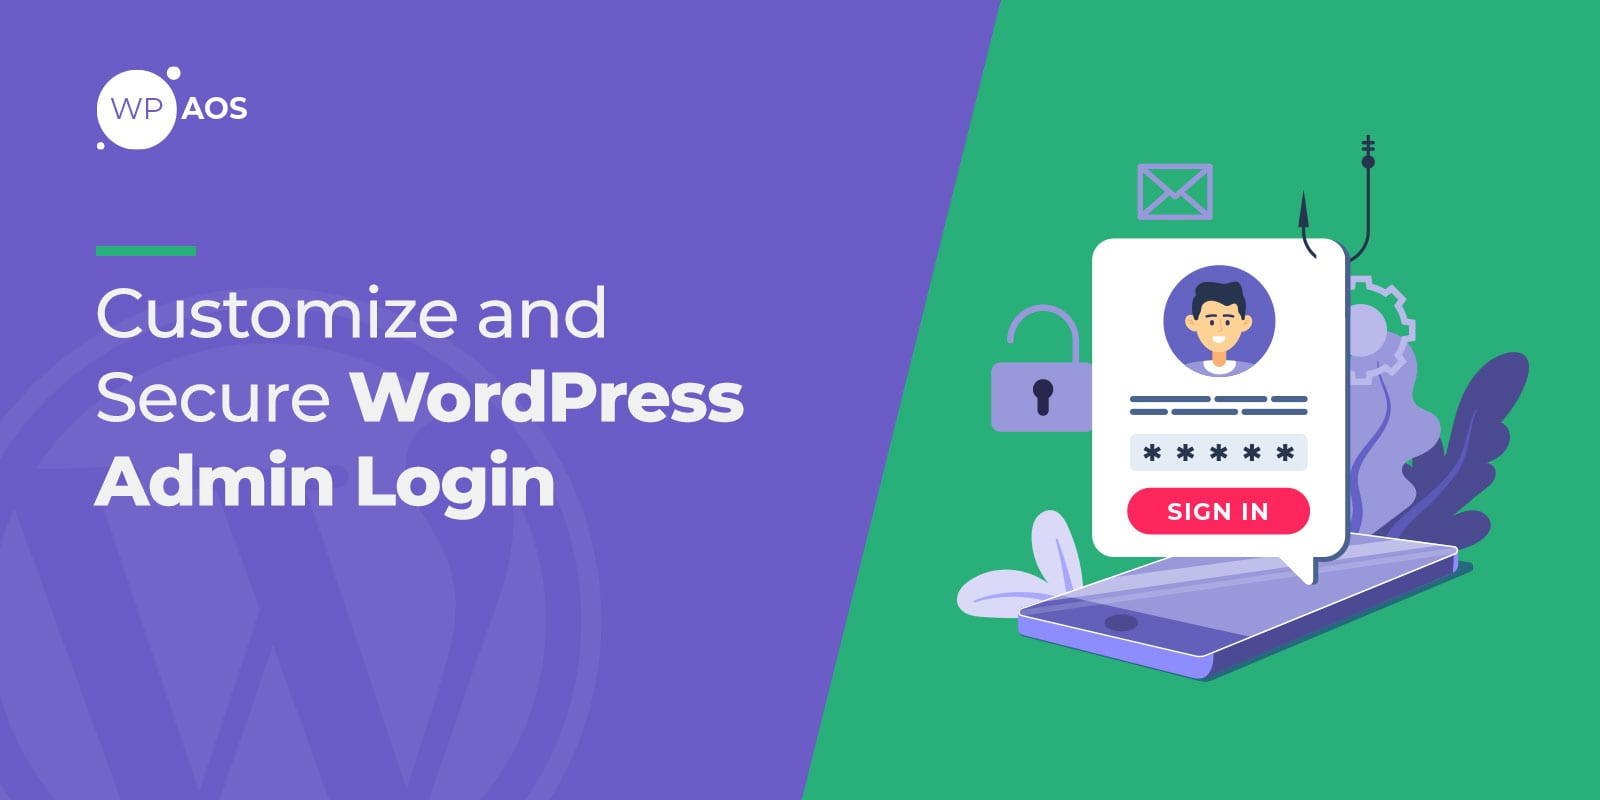 Customize, Secure WordPress Admin Login, wpaso